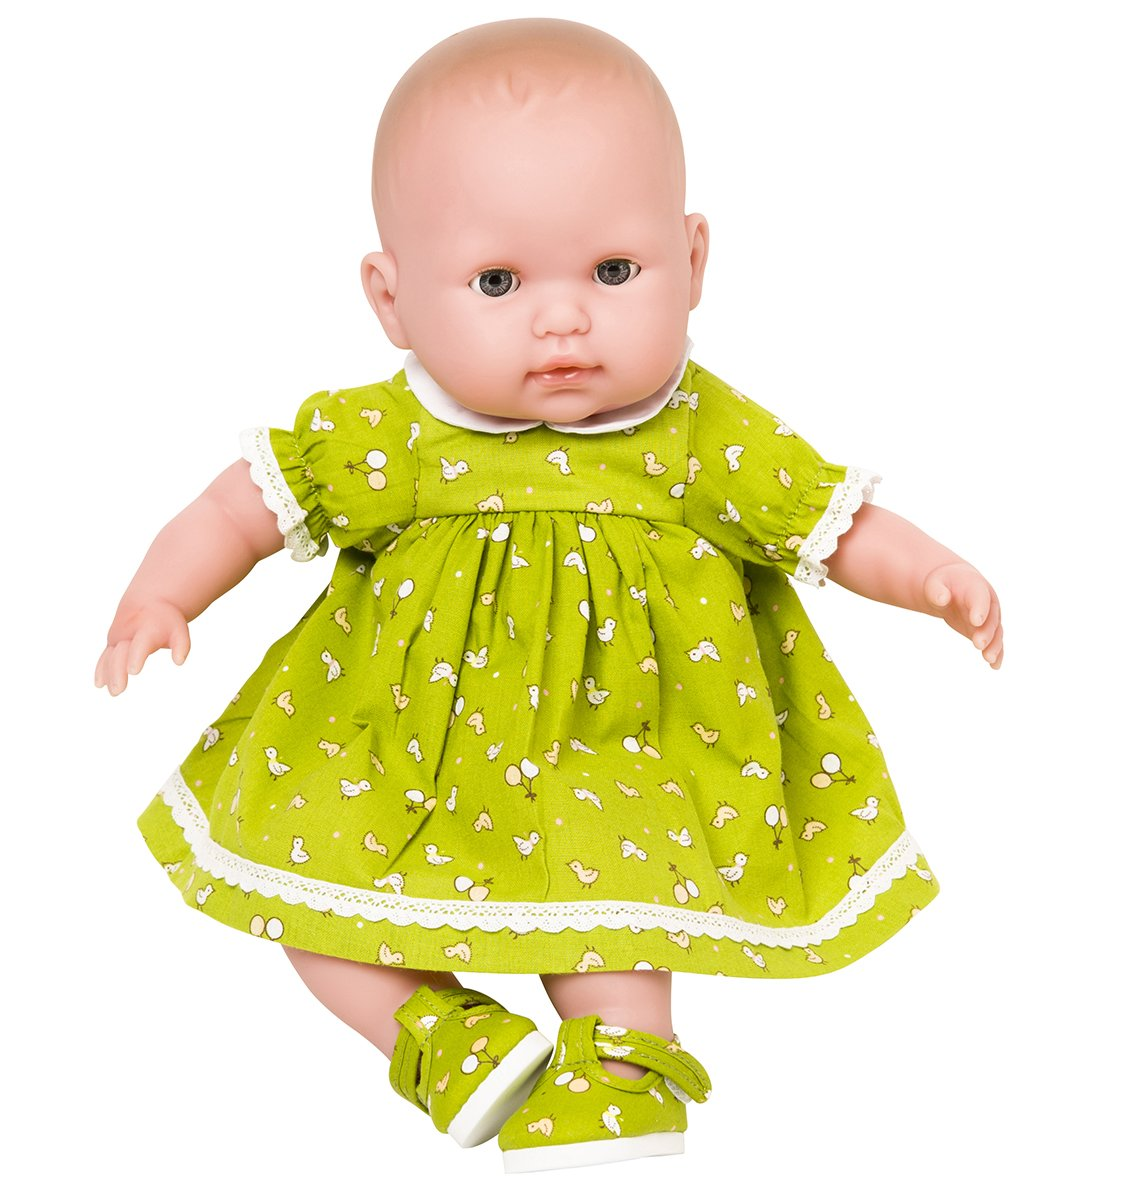 New for Spring !12-14 inch Dolls Green Dress with Tiny Chick and Balloon design, from Frilly Lily .Suitable for dolls 12-14 INCHES [30-35 CM]such as GOTZ,COROLLE,ZAPF,MY LITTLE BABY BORN,MY FIRST BABY ANNABELL. DRESS ONLY , DOLL OR SHOES NOT INCLUDED